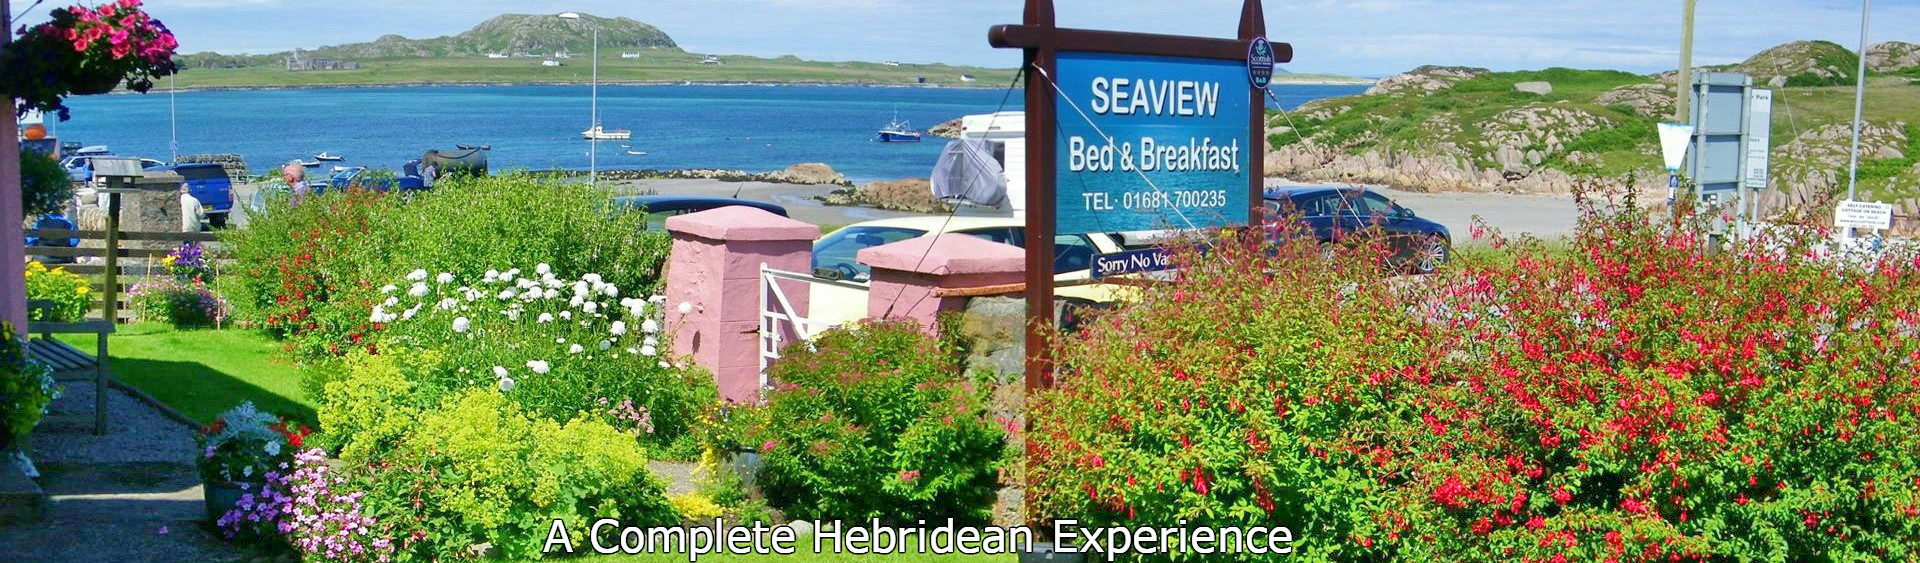 Seaview bed and breakfast,Fionnphort,Isle of Mull,Isle of Iona